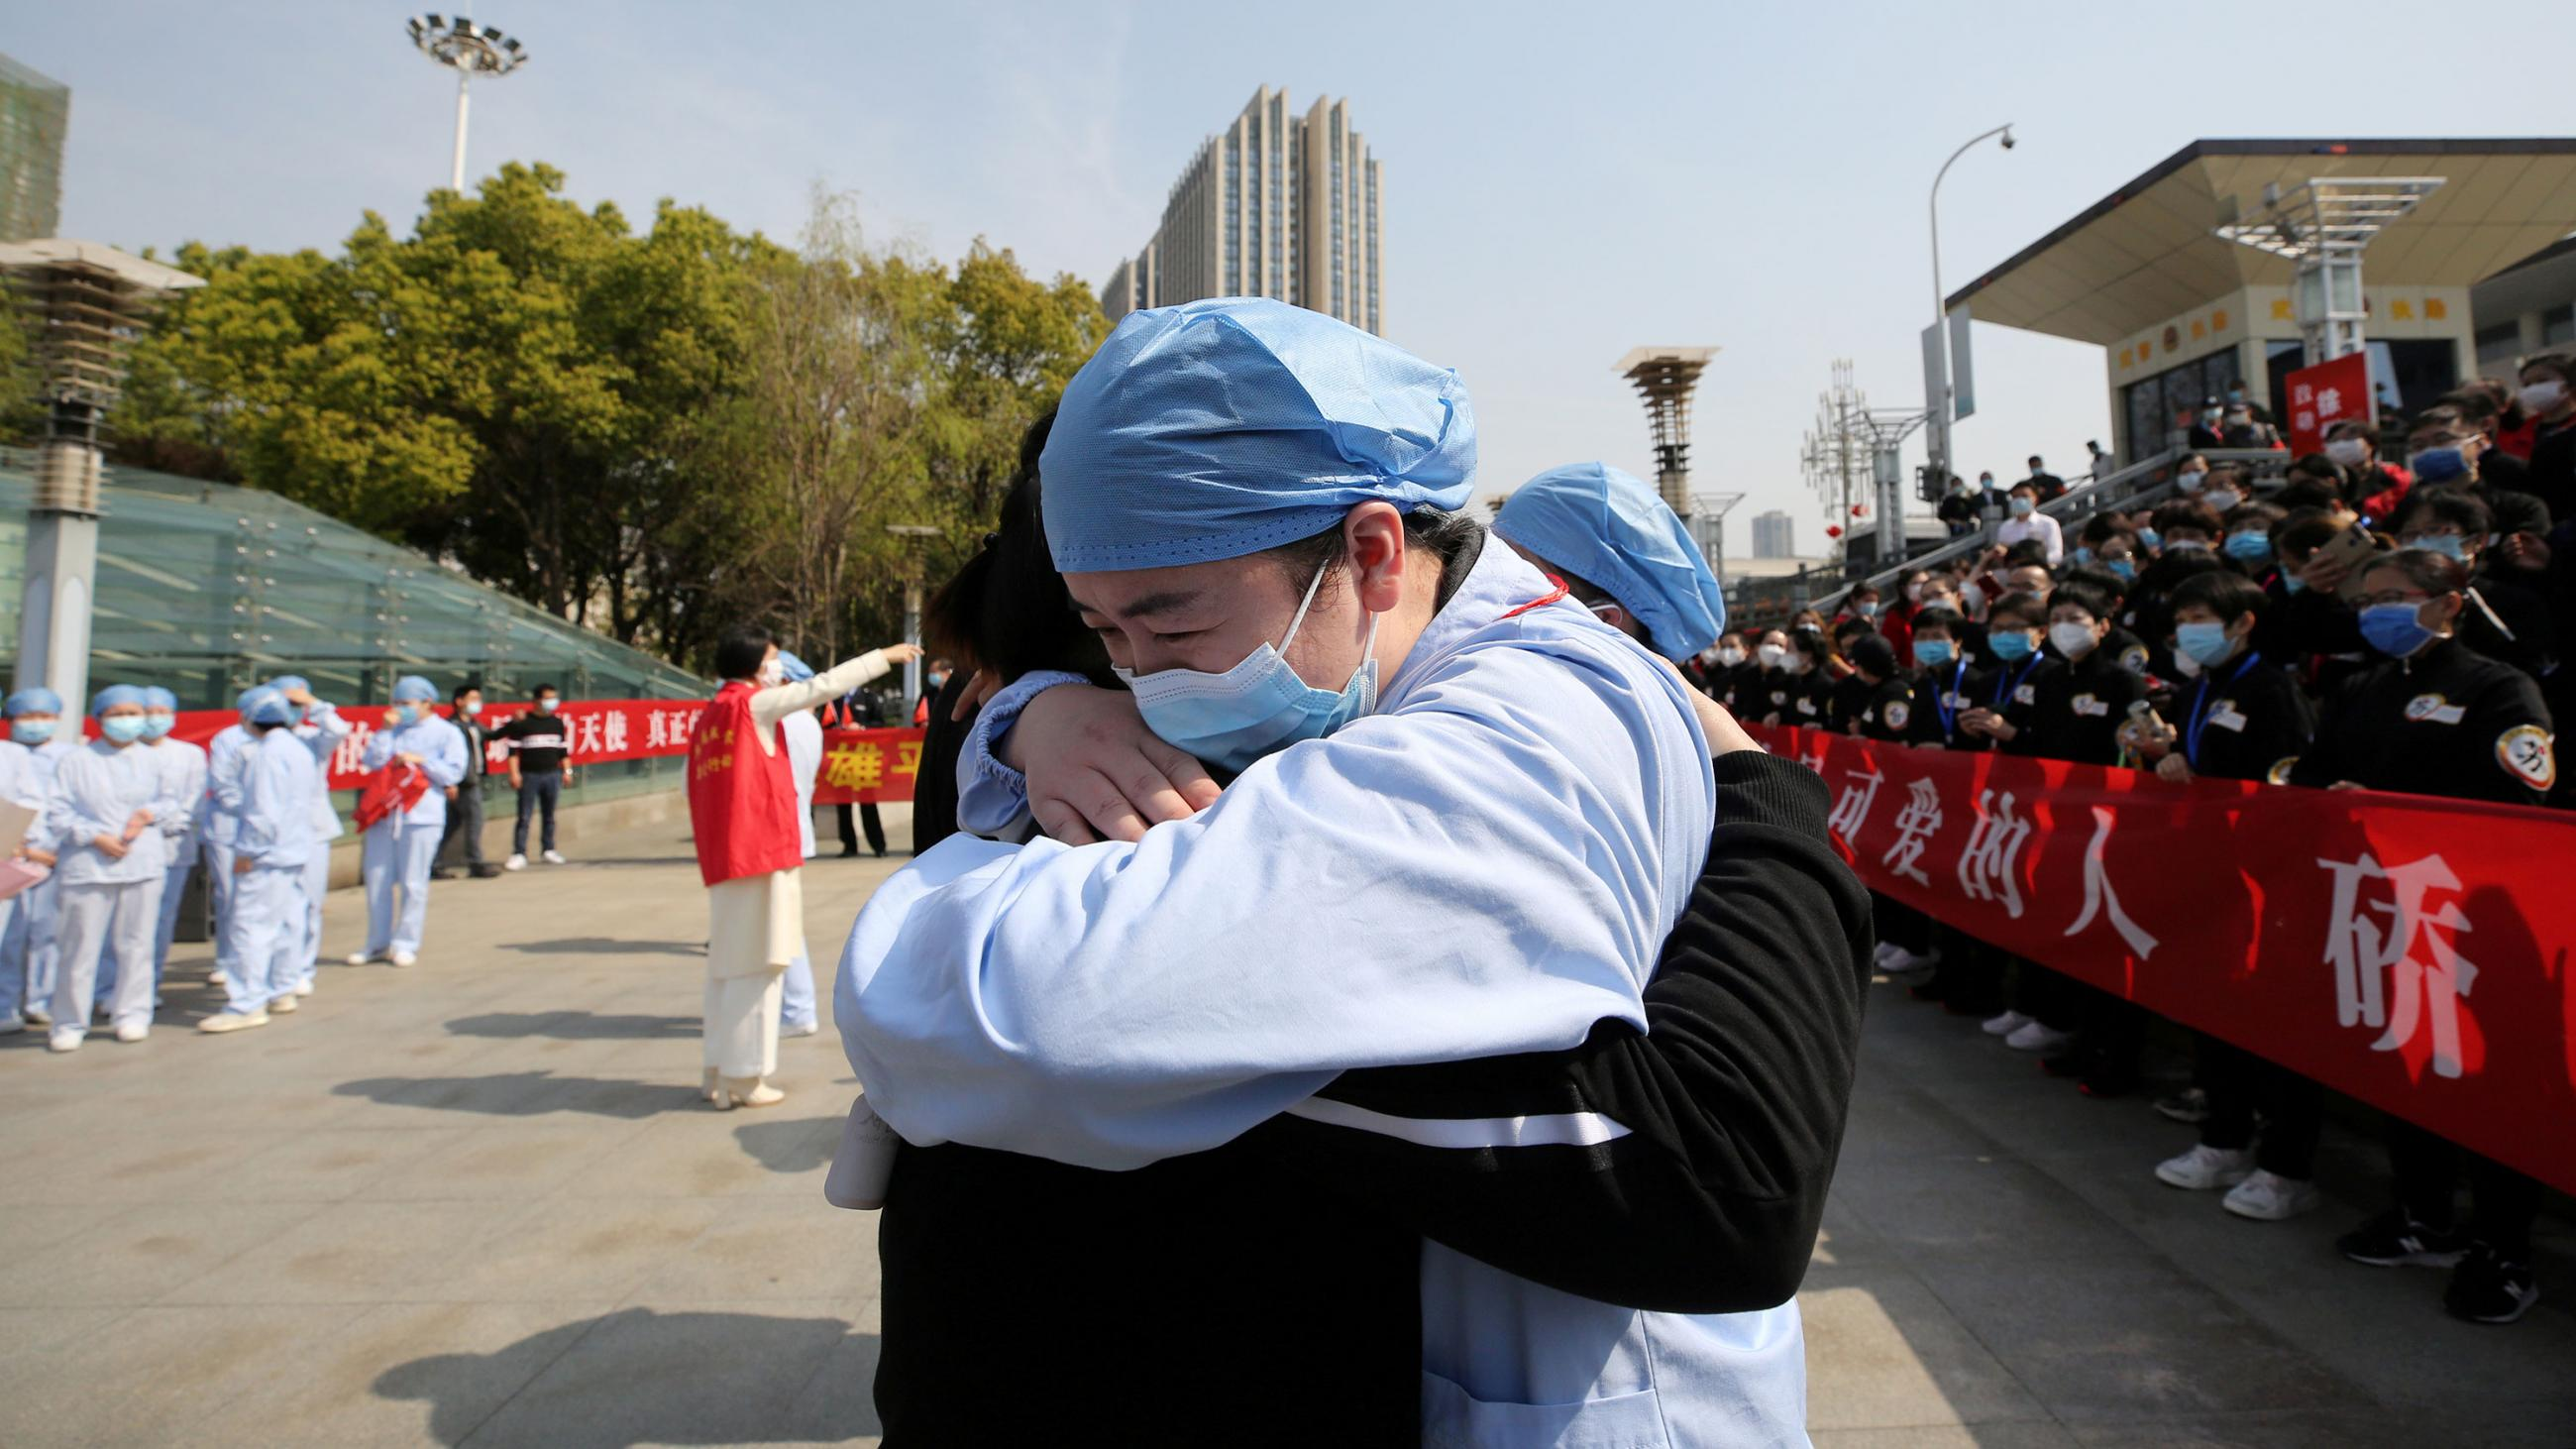 The photo shows two medical workers hugging in what is obviously an emotional scene.